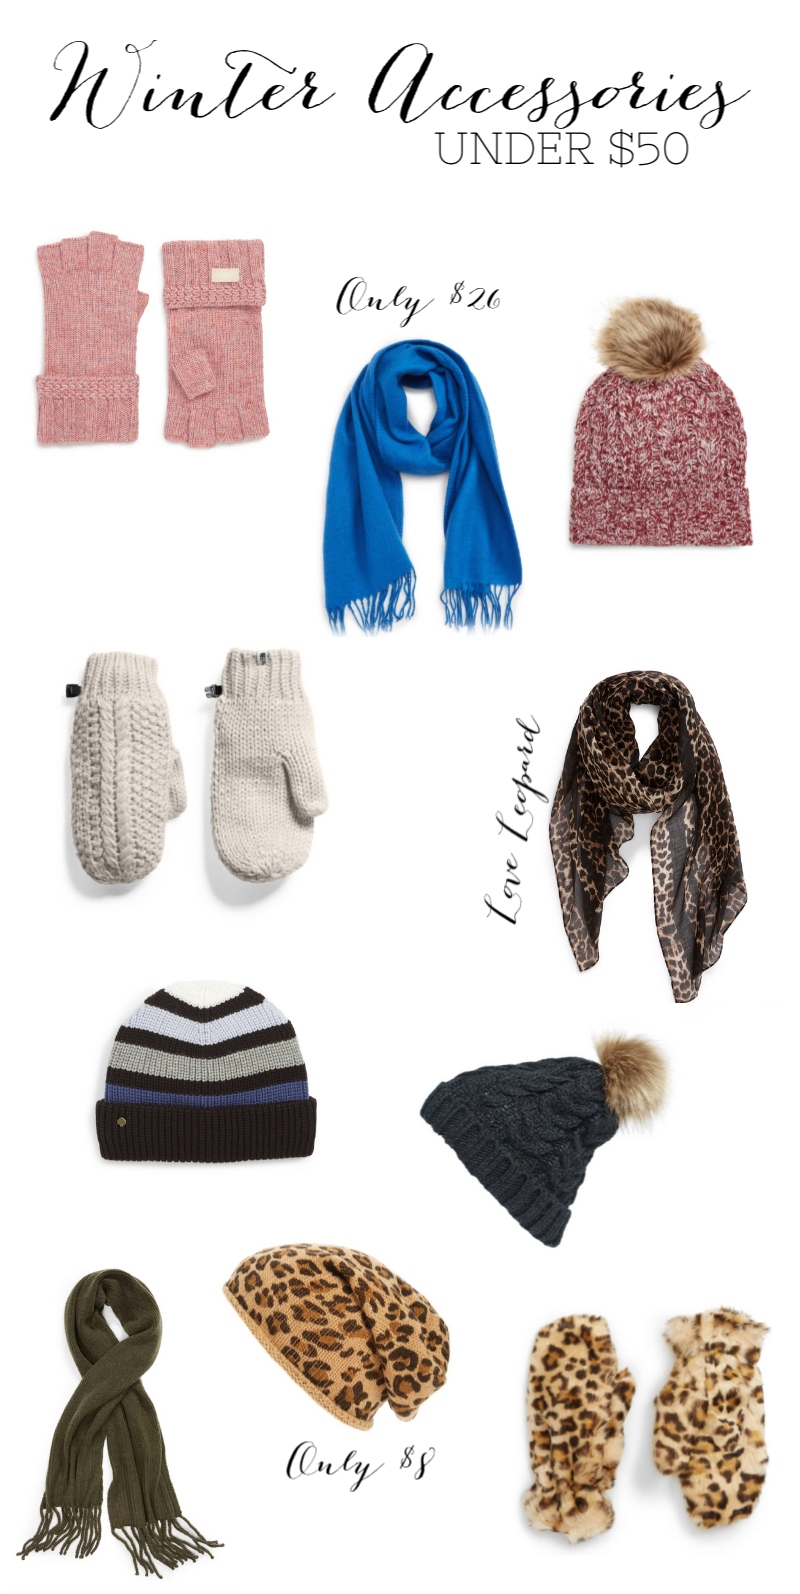 winter, winter accessories, leopard, scarf, mittens, gloves, beanie, pom pom beanie, winter accessories under $50, winter sale